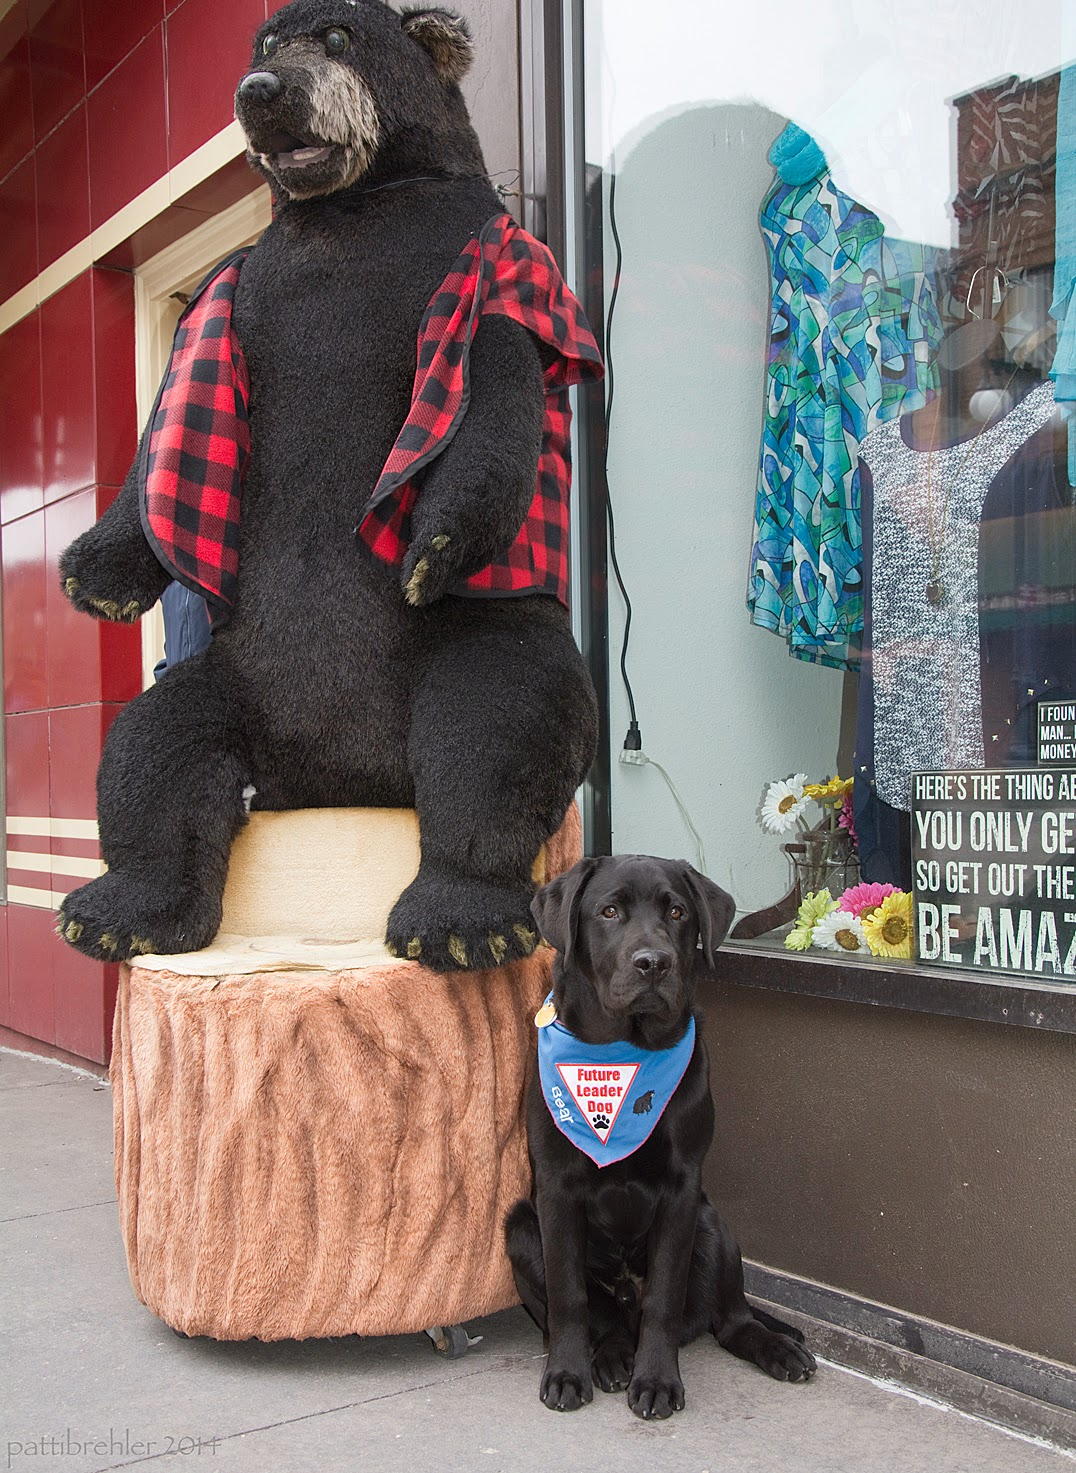 A black lab puppy is sitting on the sidewalk in front of a store's clothing display window, next to a wooden statue of a black bear. The bear is sitting on a tree stump and is wearing a red plaid shirt. The puppy is wearing a blue Future Leader Dog bandana.